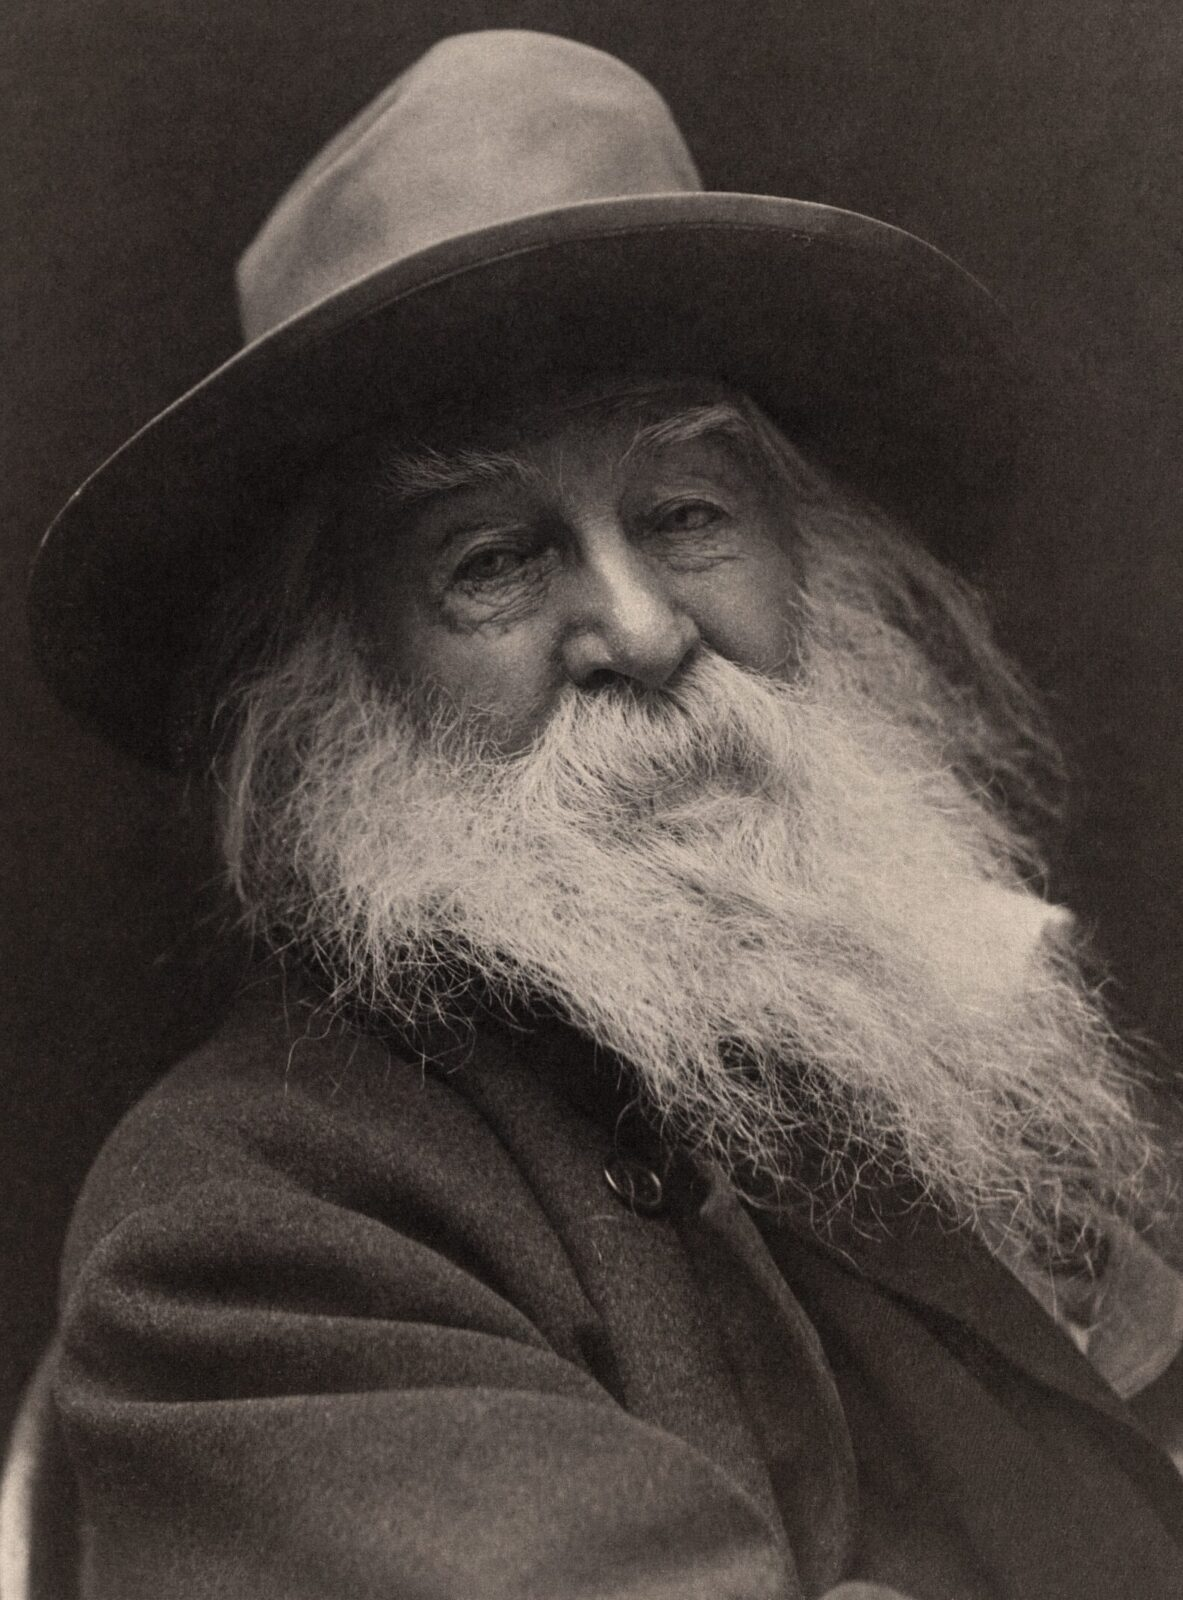 portrait of Walt Whitman by George Collins Cox